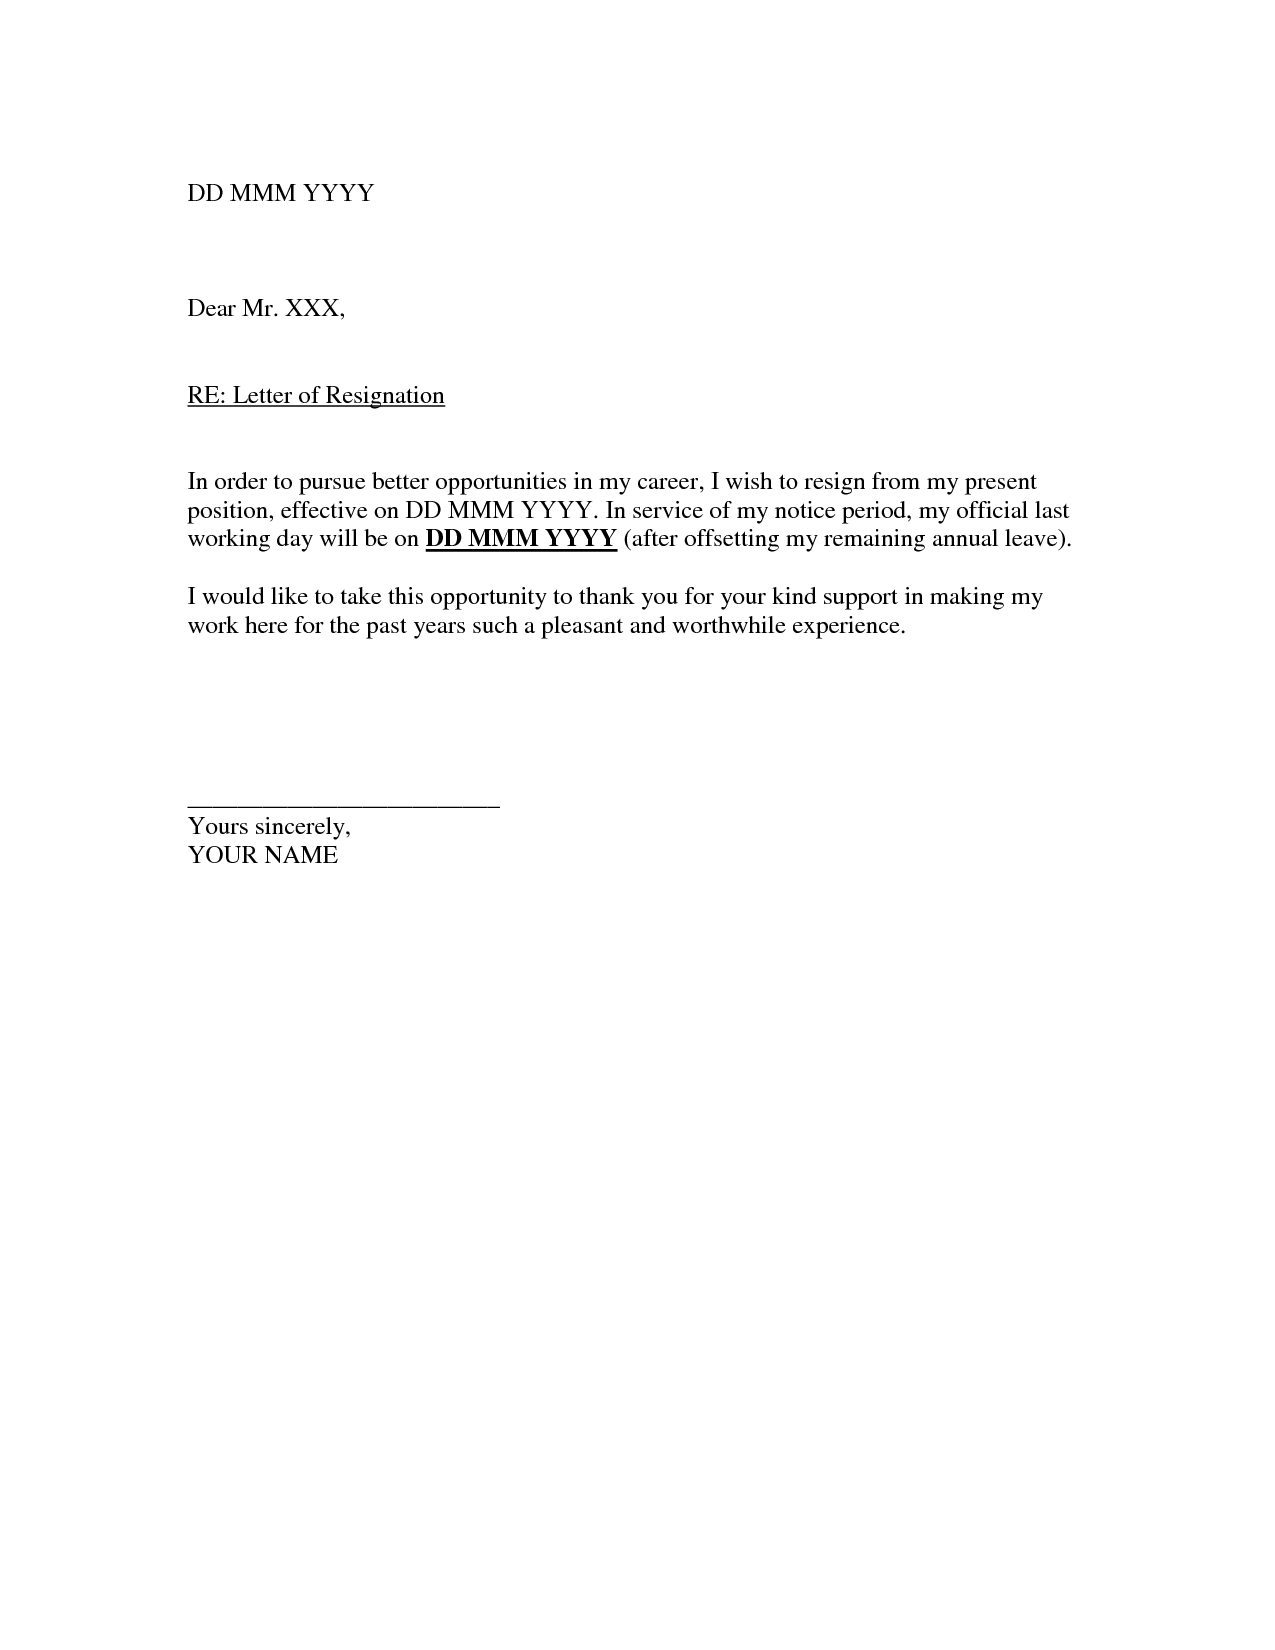 related to resignation letter template letters of resignation templates formal resignation letter sample resignation letter. Resume Example. Resume CV Cover Letter